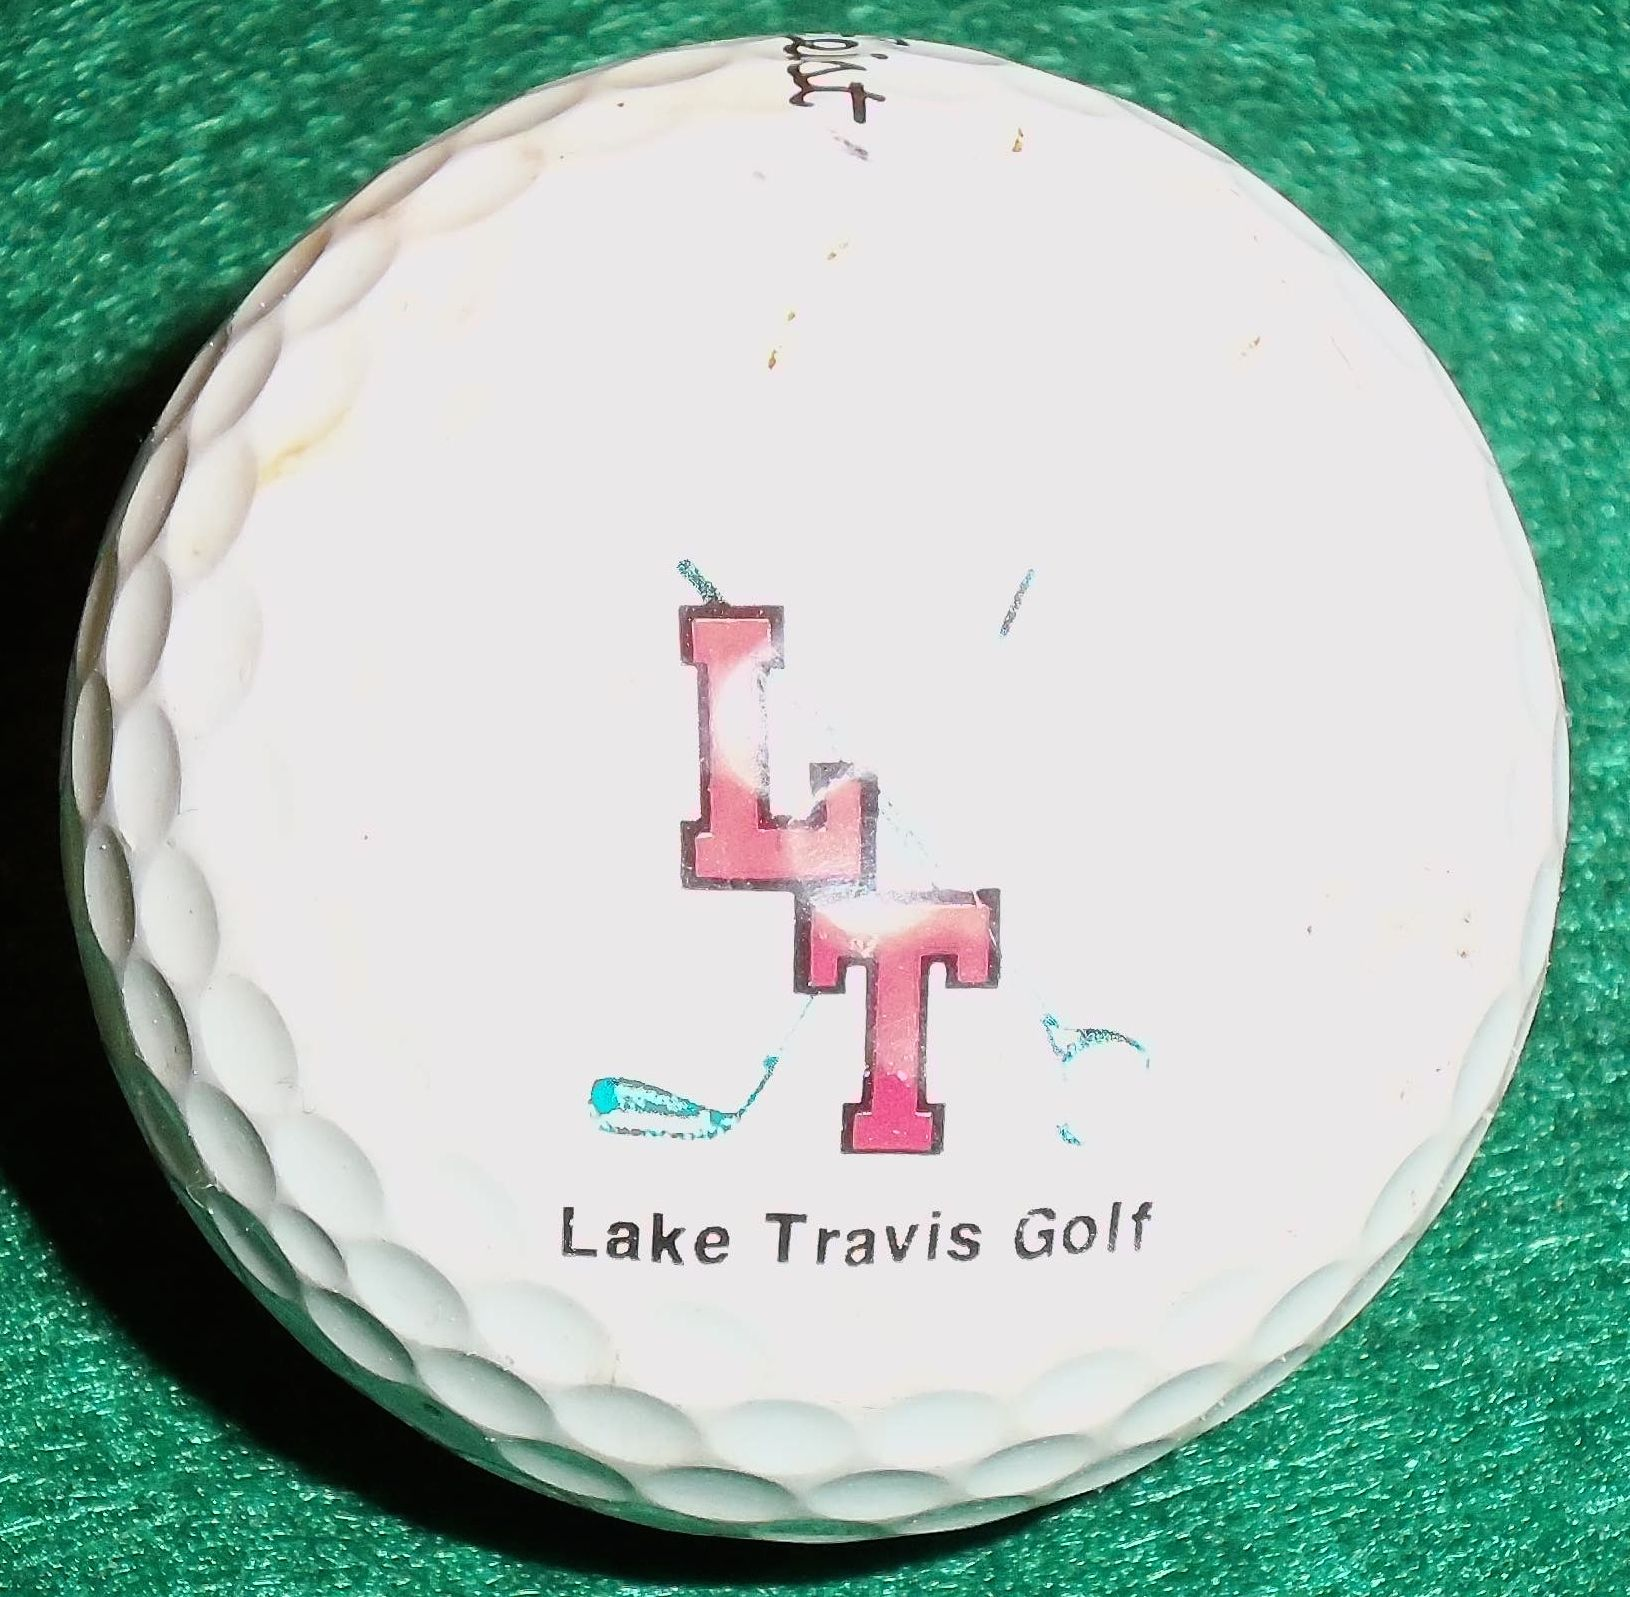 Lake Travis (Texas) HS Golf